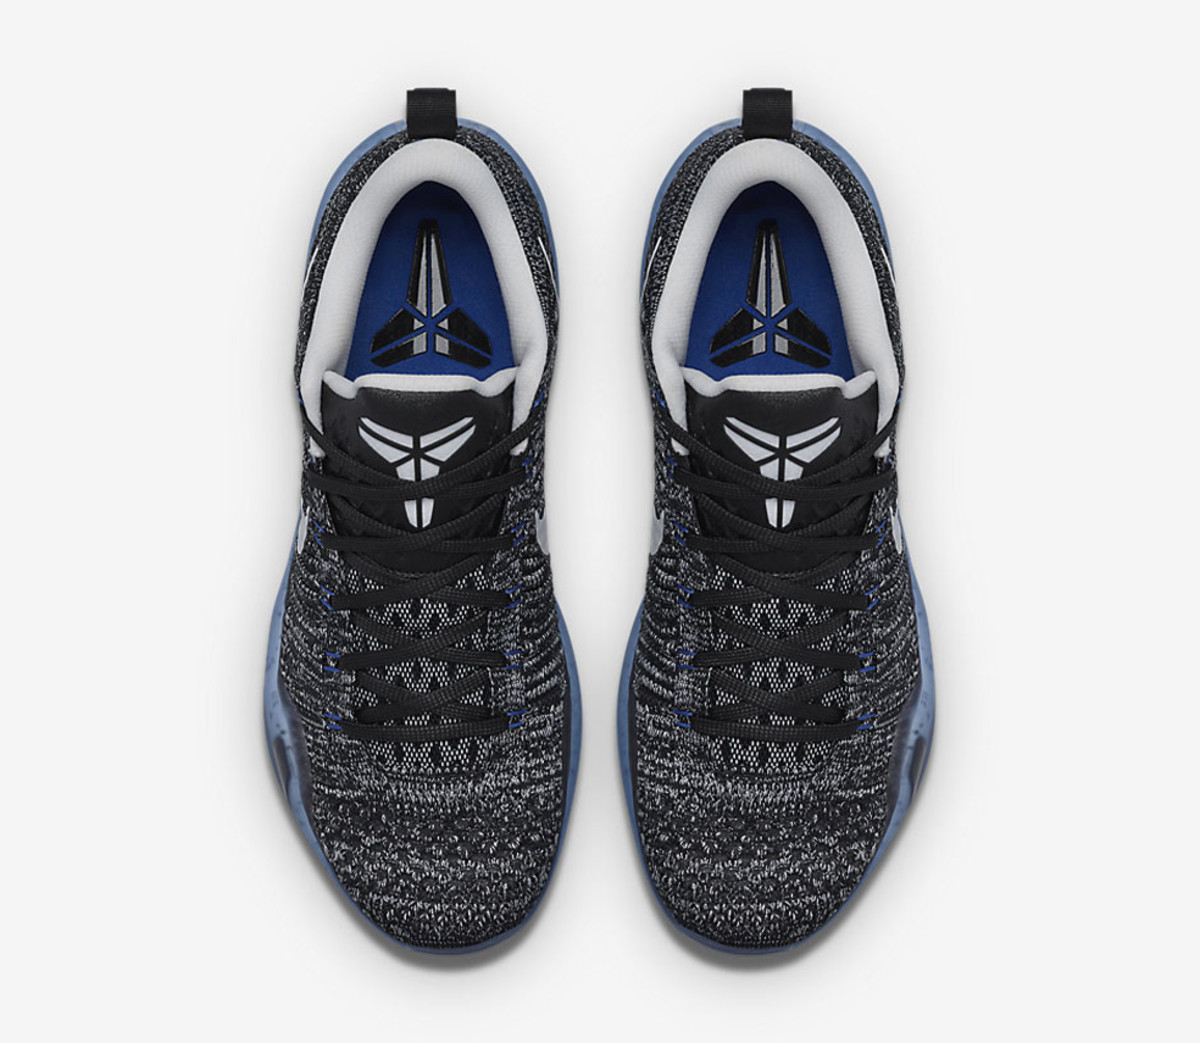 nikelab-kobe-x-elite-low-htm-02